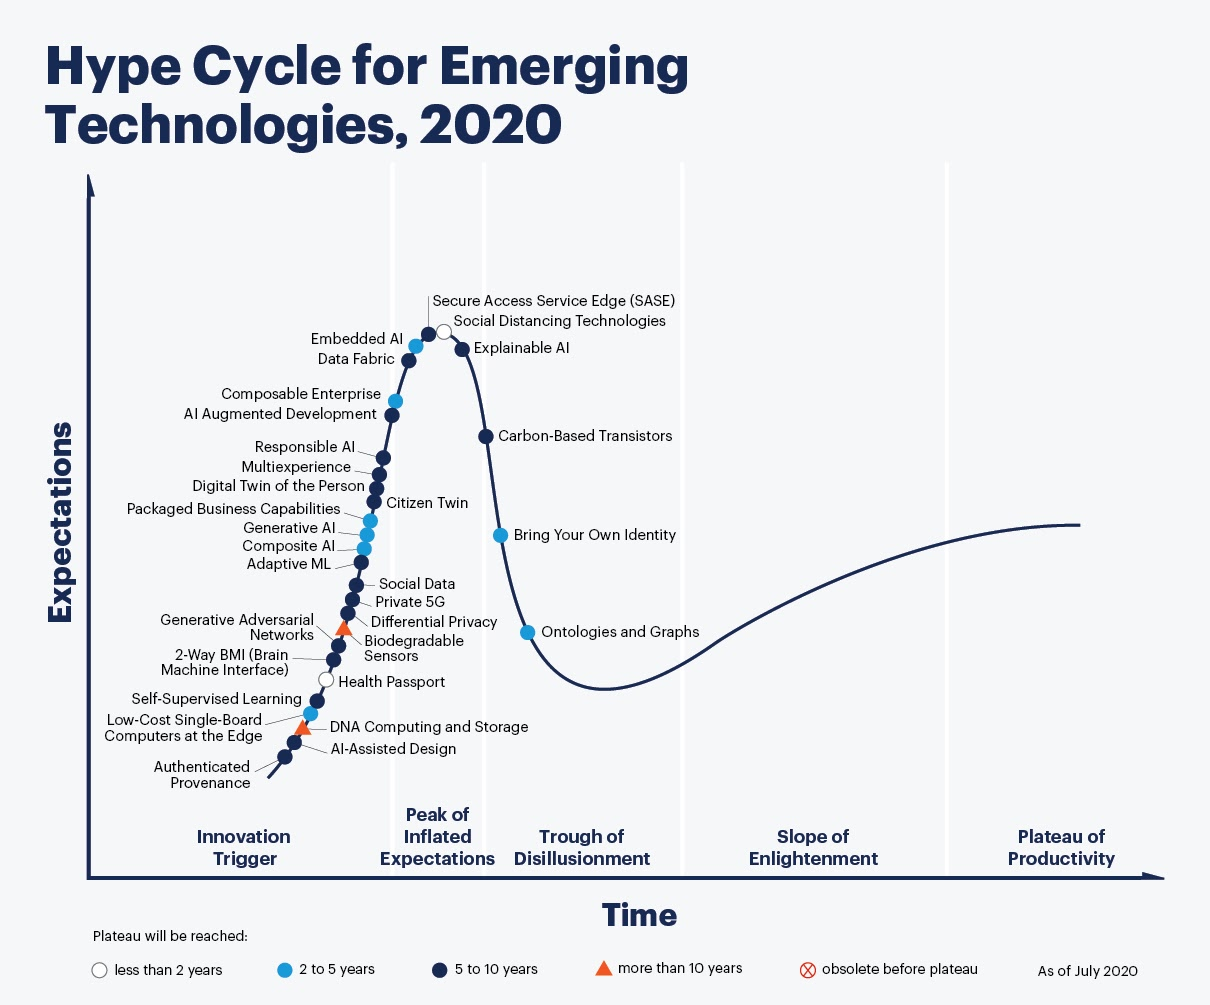 Hype Cycle for Emerging technologies, 2020